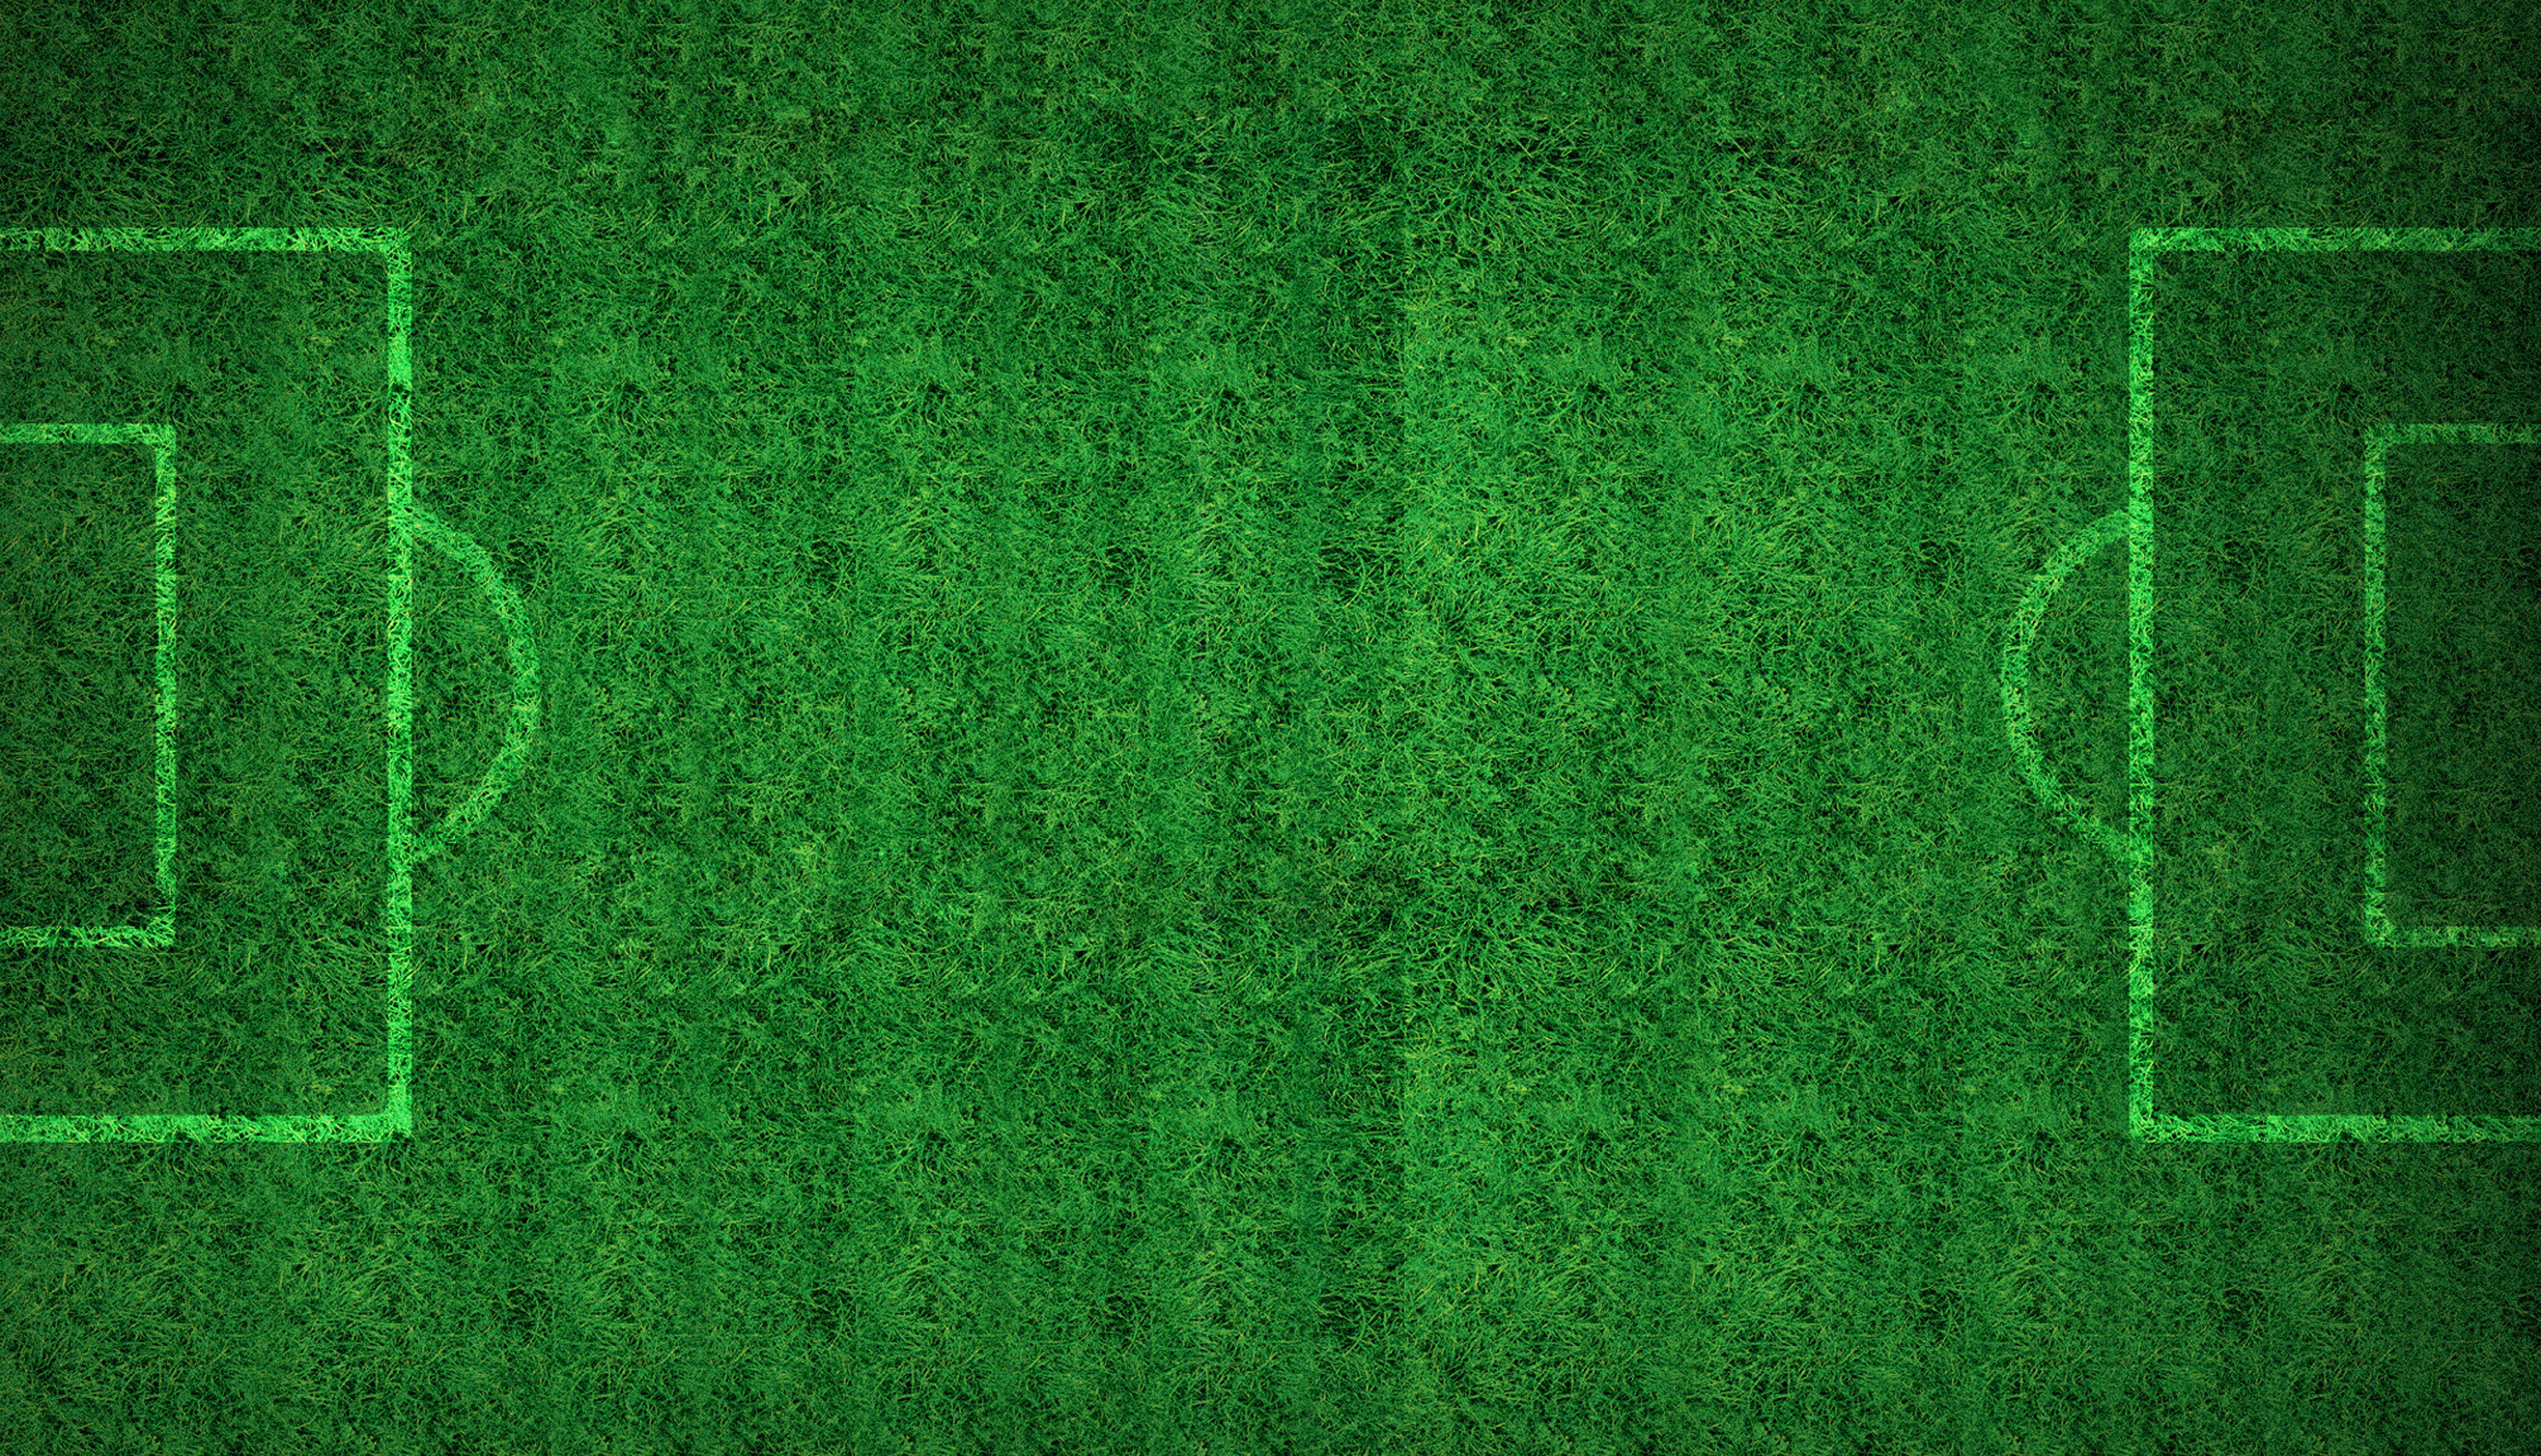 green football field background material  hd  poster